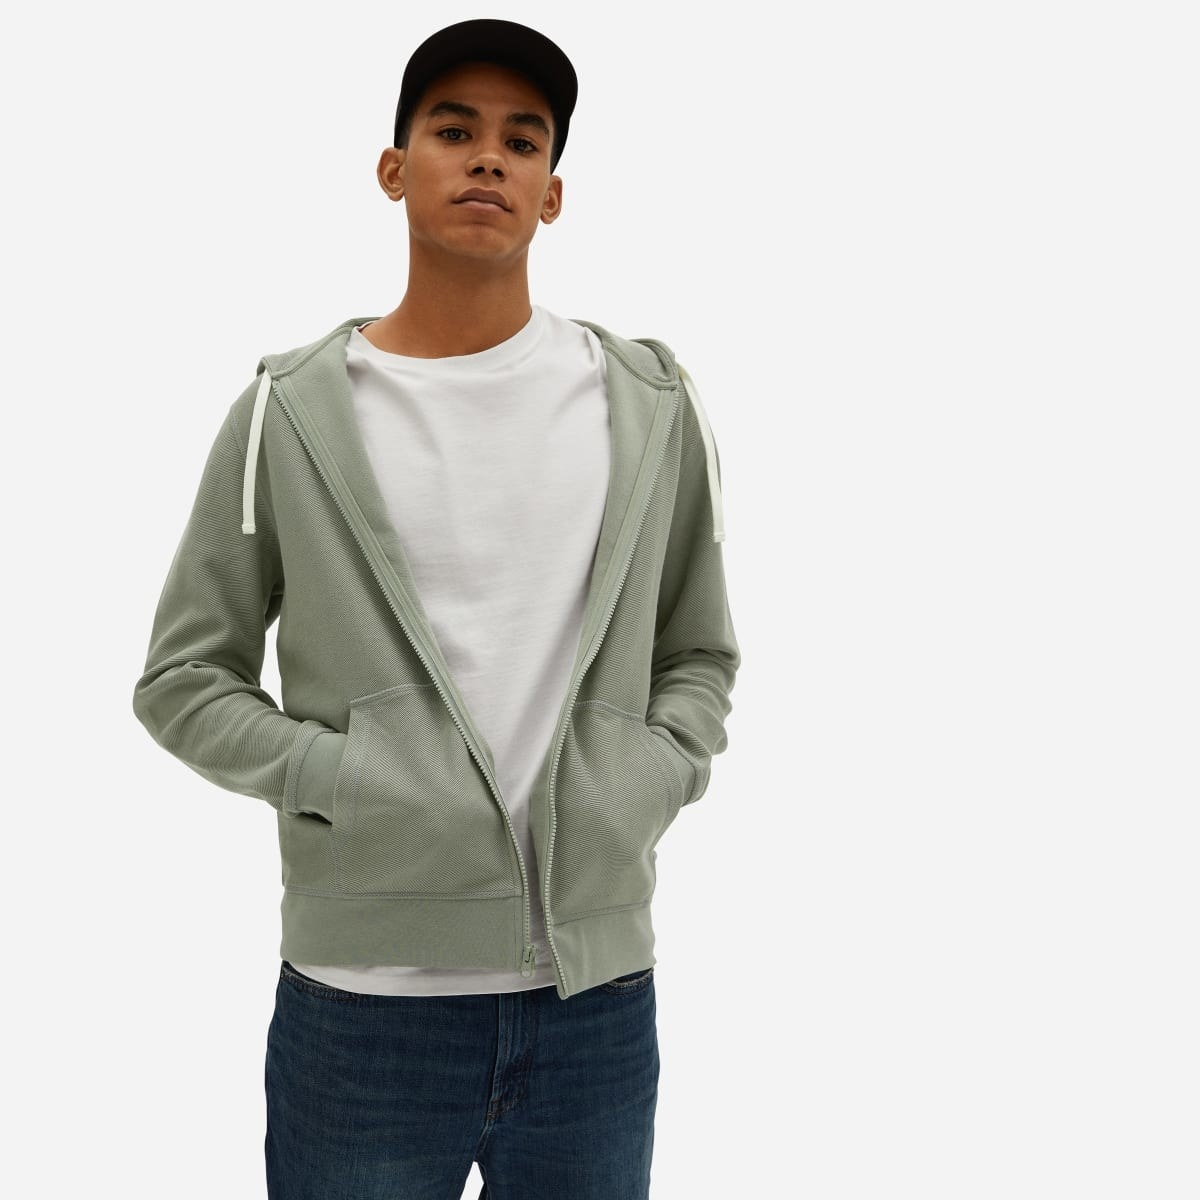 Model wearing the twill full-zip hoodie in light sage